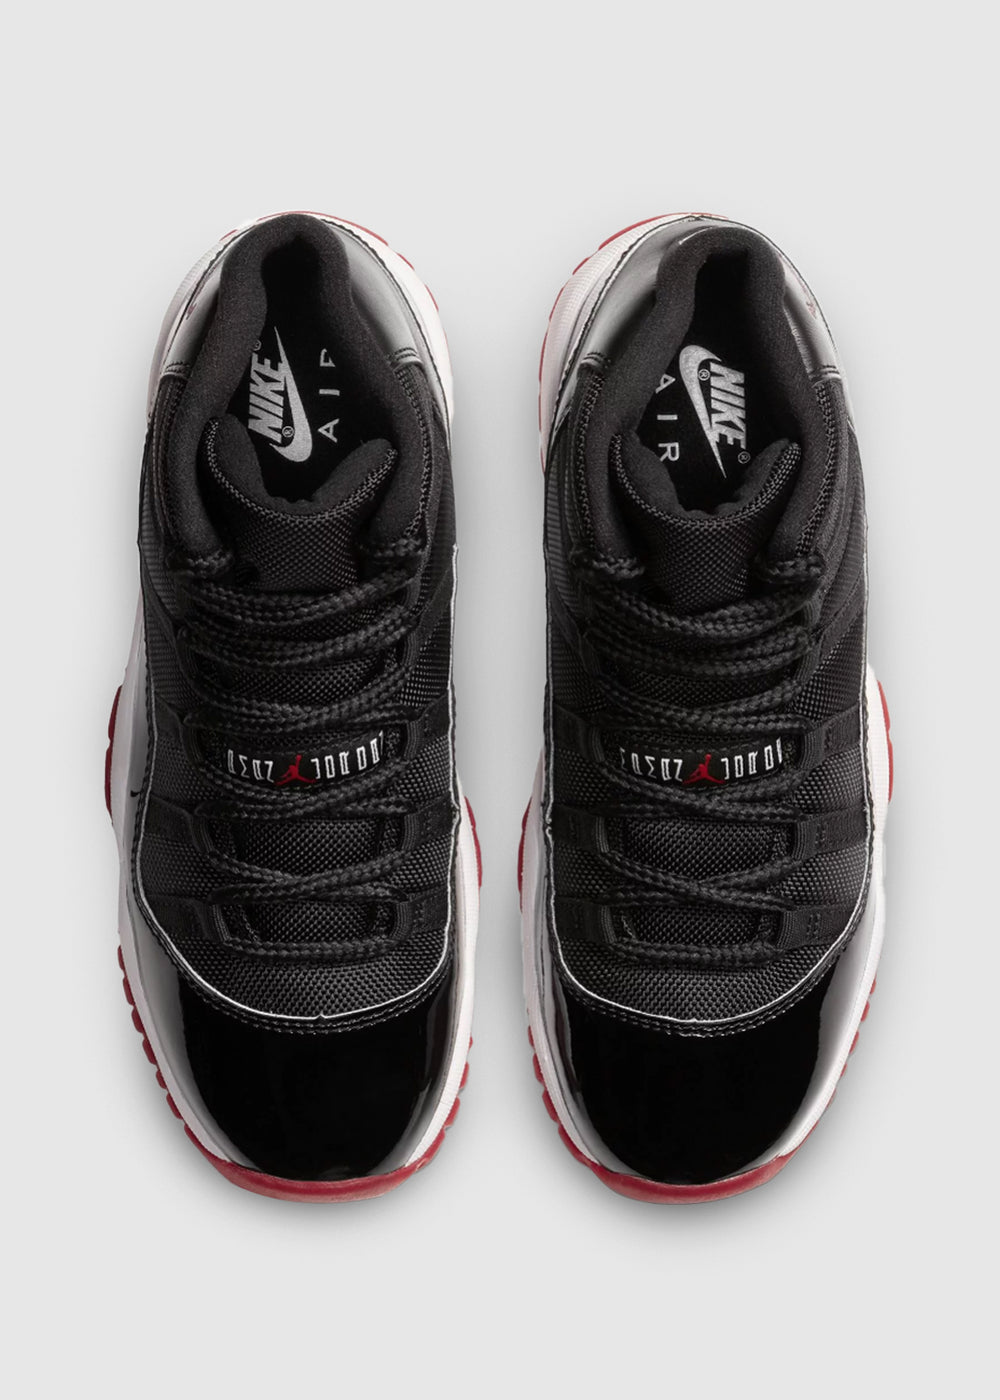 jordan-air-jordan-11-bred-black-3